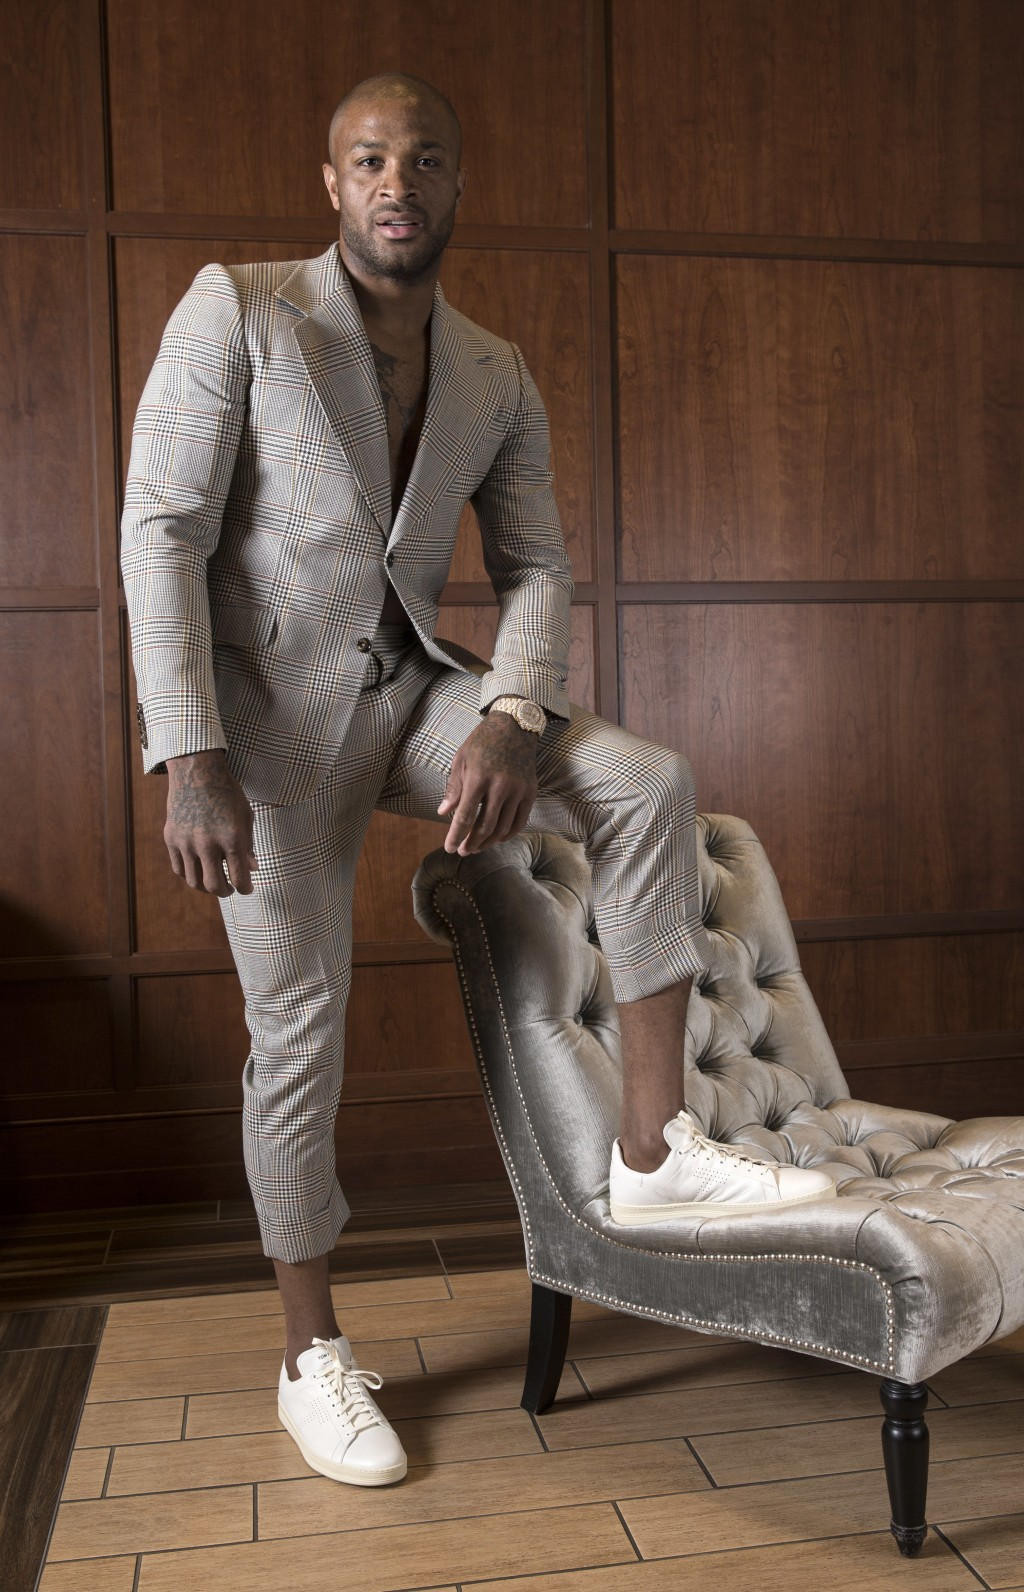 Houston Rockets' P.J. Tucker poses in a made-to-order Gucci suit with Tom Ford sneakers Tuesday, May 15, 2018, in Houston. Tucker's playing style and